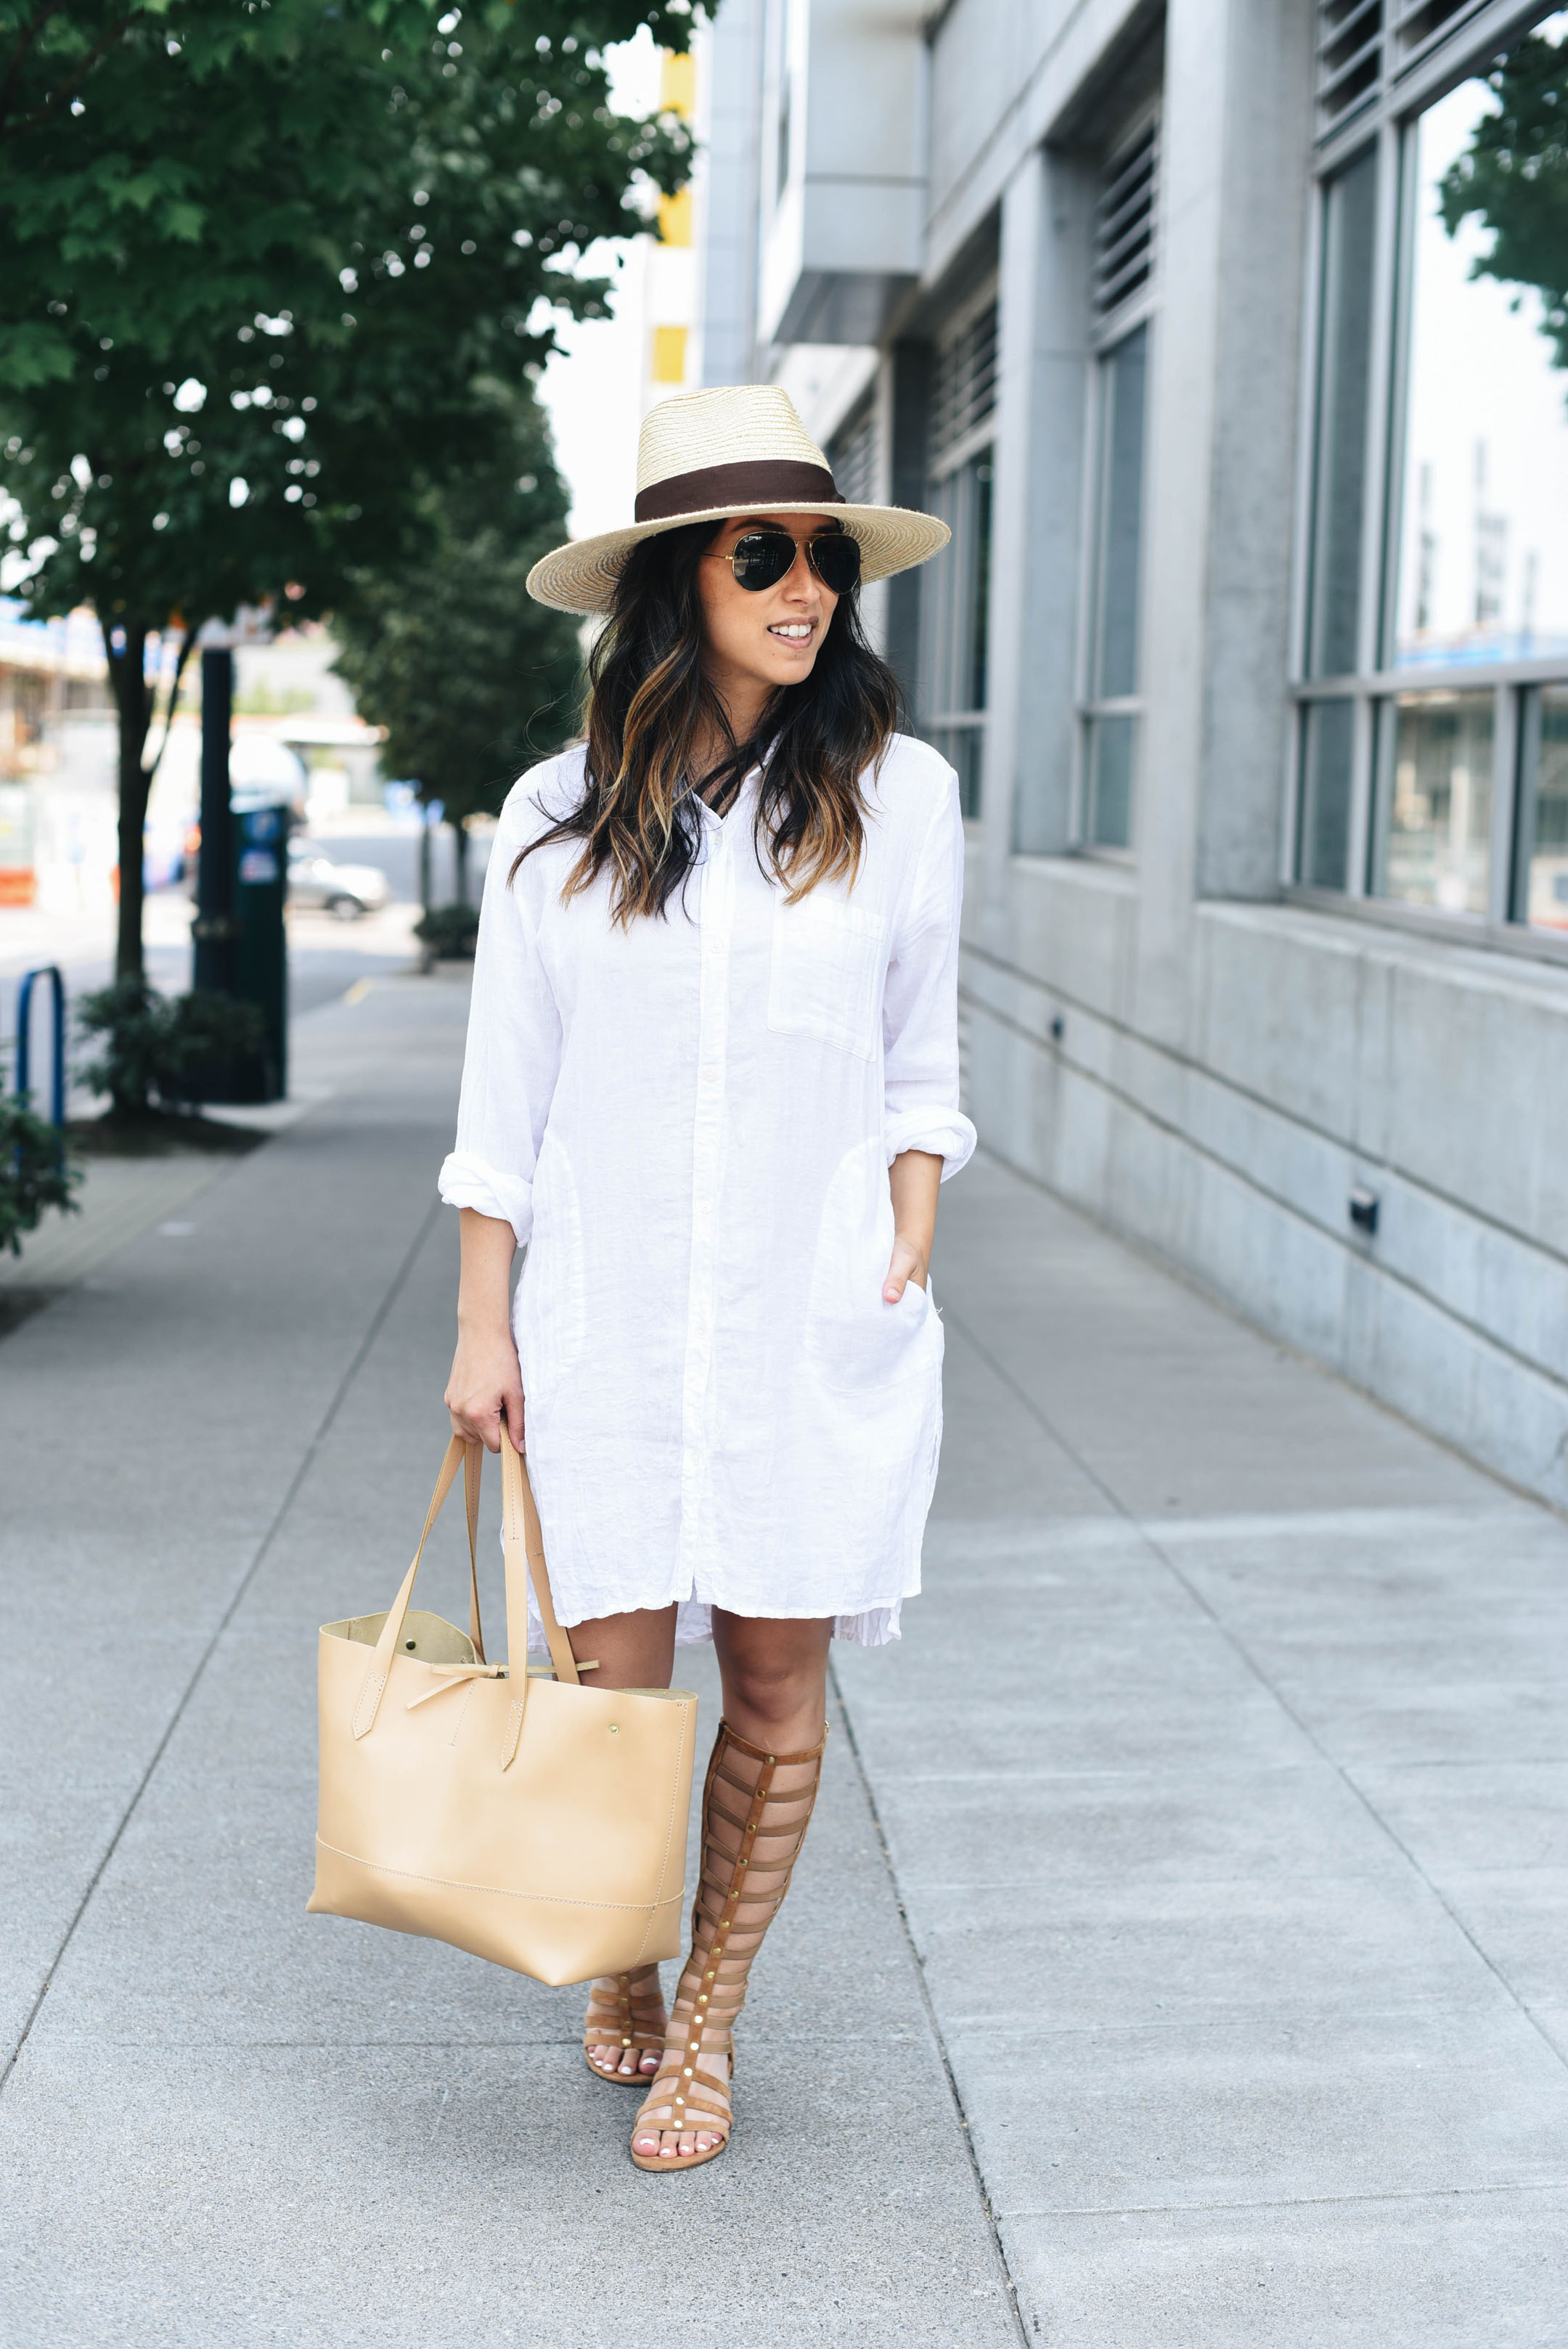 Best shirt maternity dresses